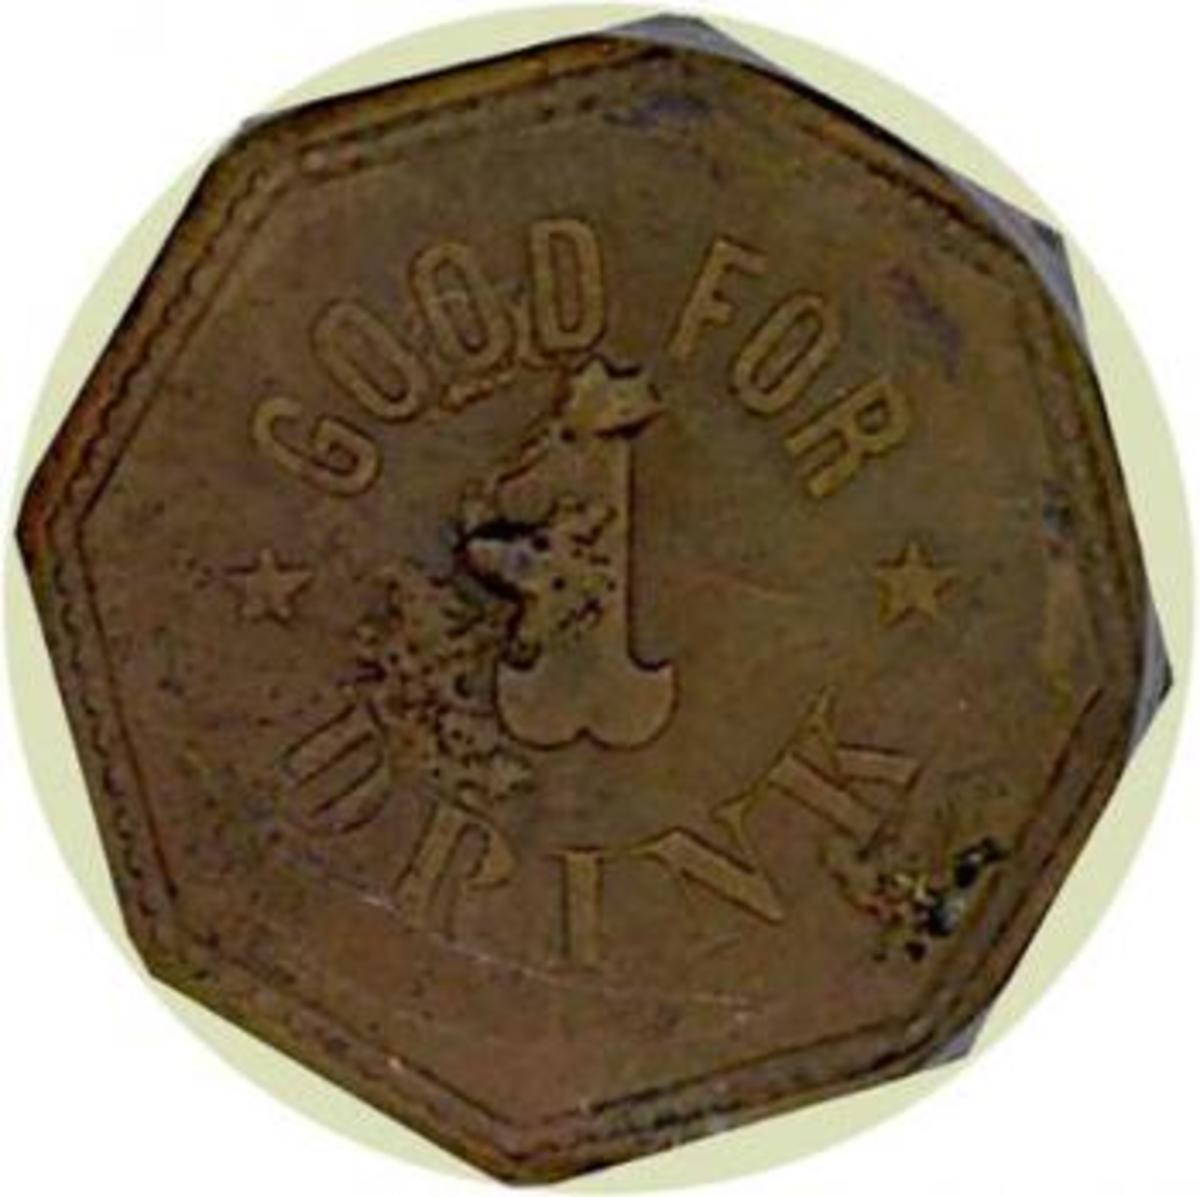 This authentic token from a saloon in Congress, Arizona is a desirable collector's item. Image copyright Holabird-Kagin Americana, used with permission.